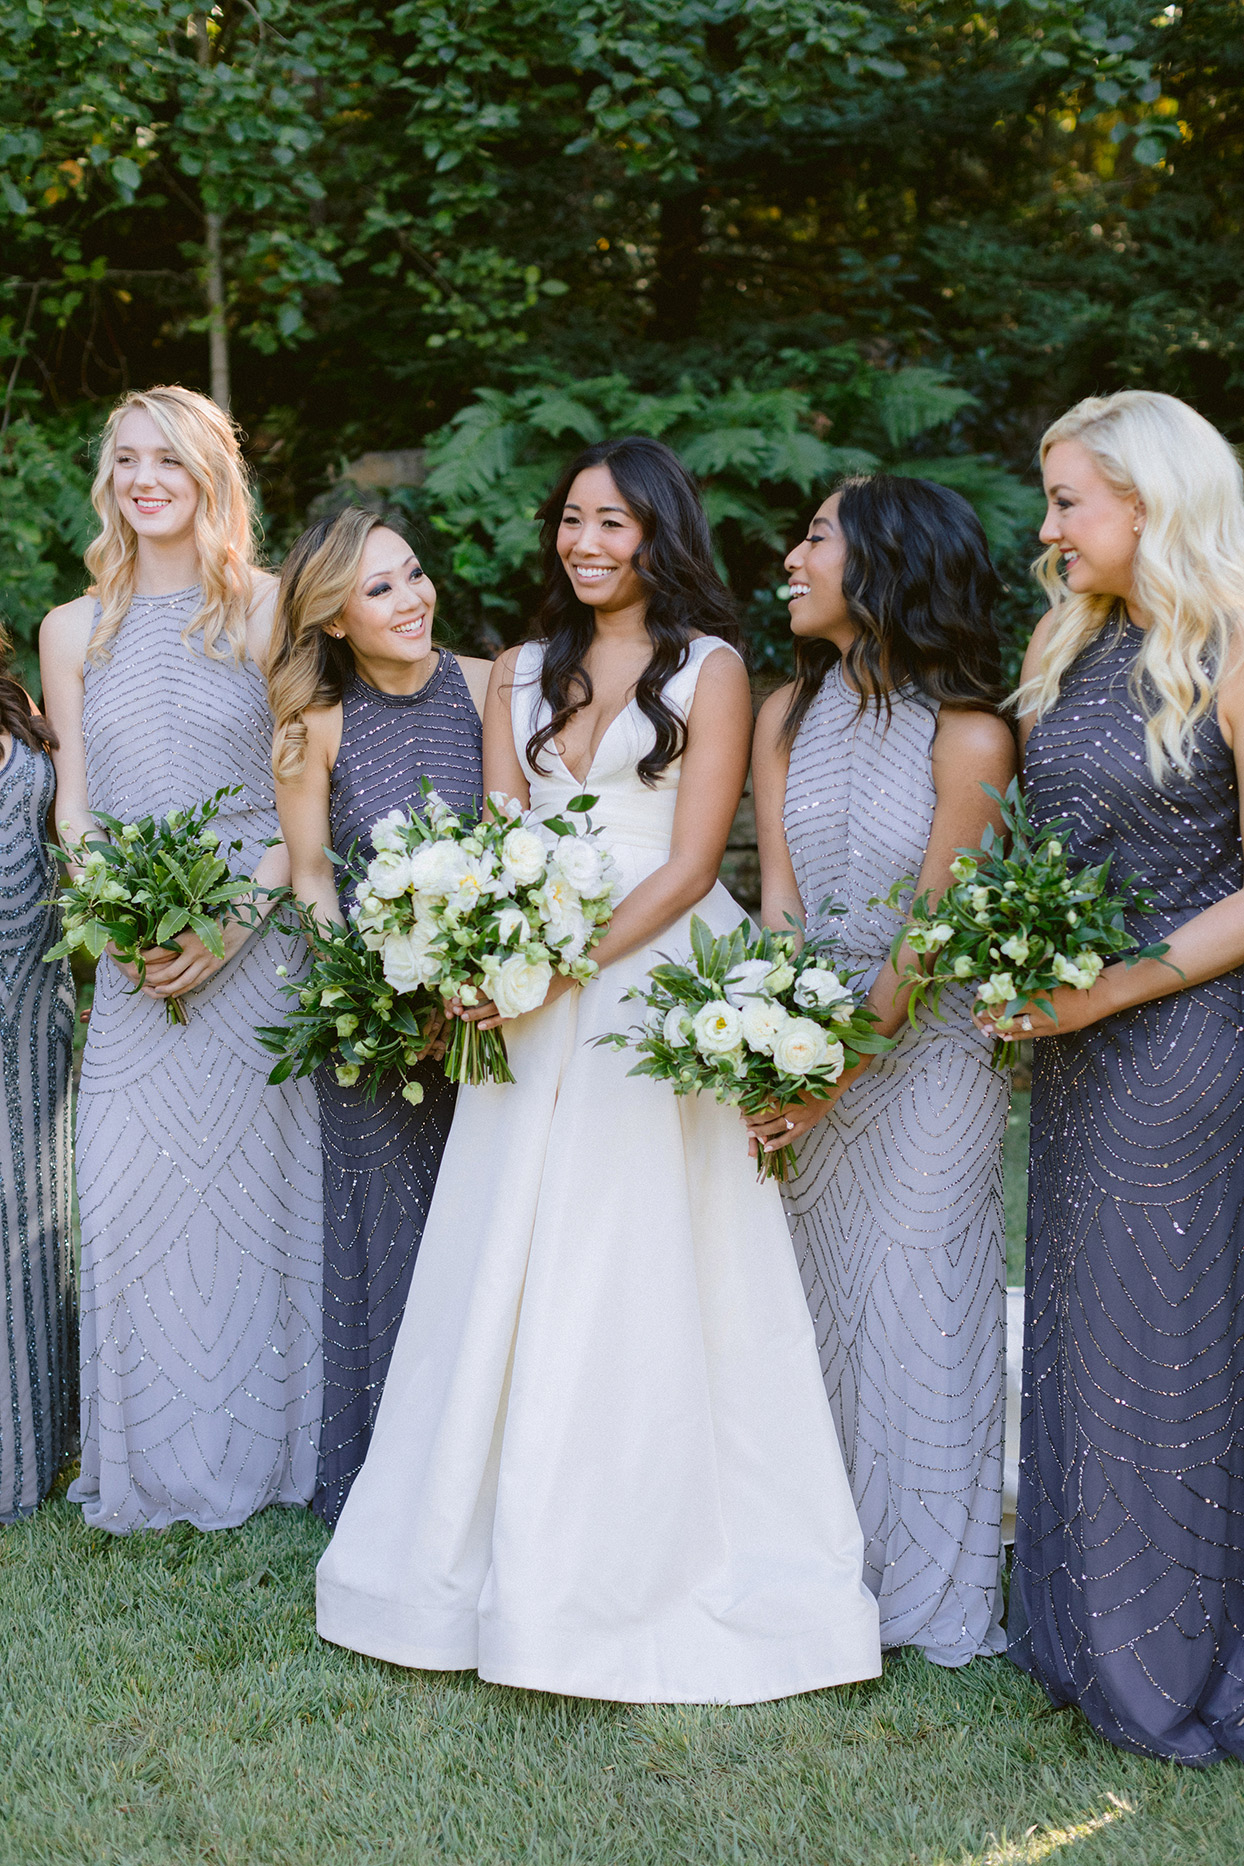 Bridesmaids in BHLDN Anthropologie dresses and bouquets of jasmine, viburnum, and gardenia